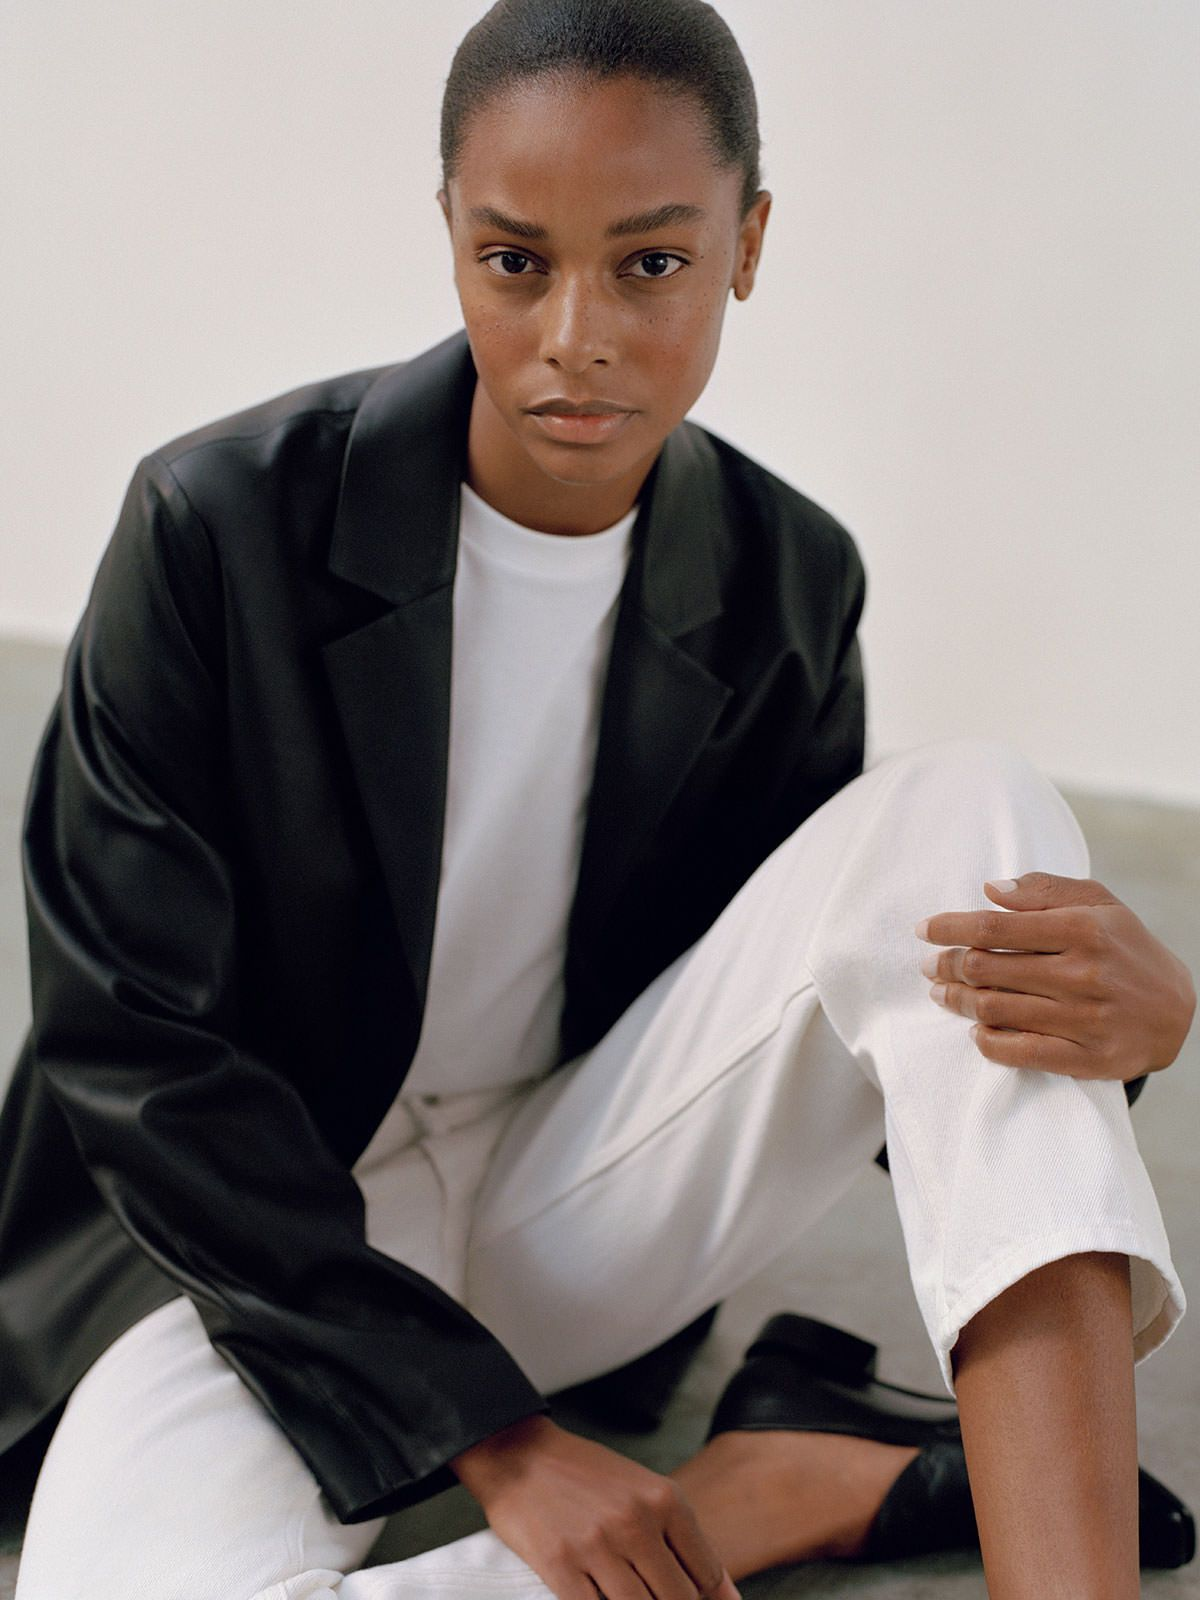 5 Minimalist Fall Outfit Ideas — Capsule Wardrobe with black leather jacket, white t-shirt, and white jeans